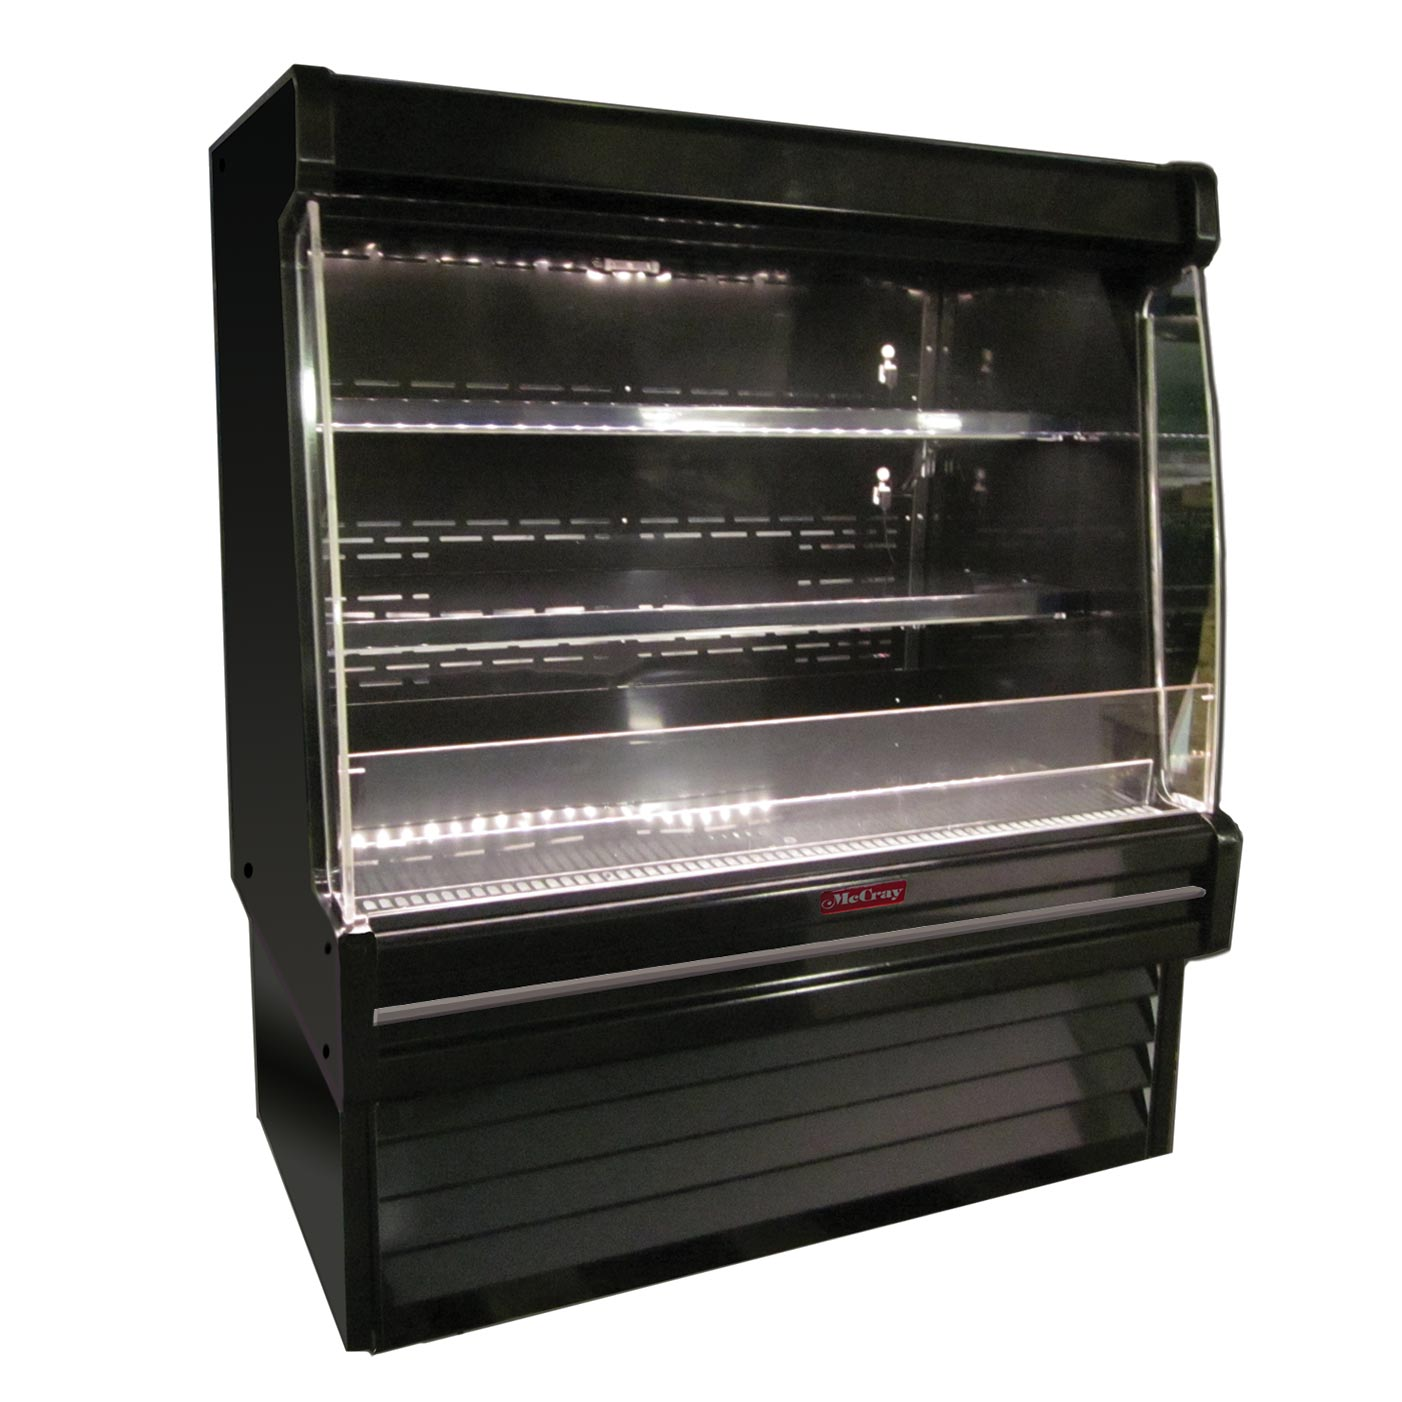 Howard-McCray SC-OD35E-6L-B-LED merchandiser, open refrigerated display